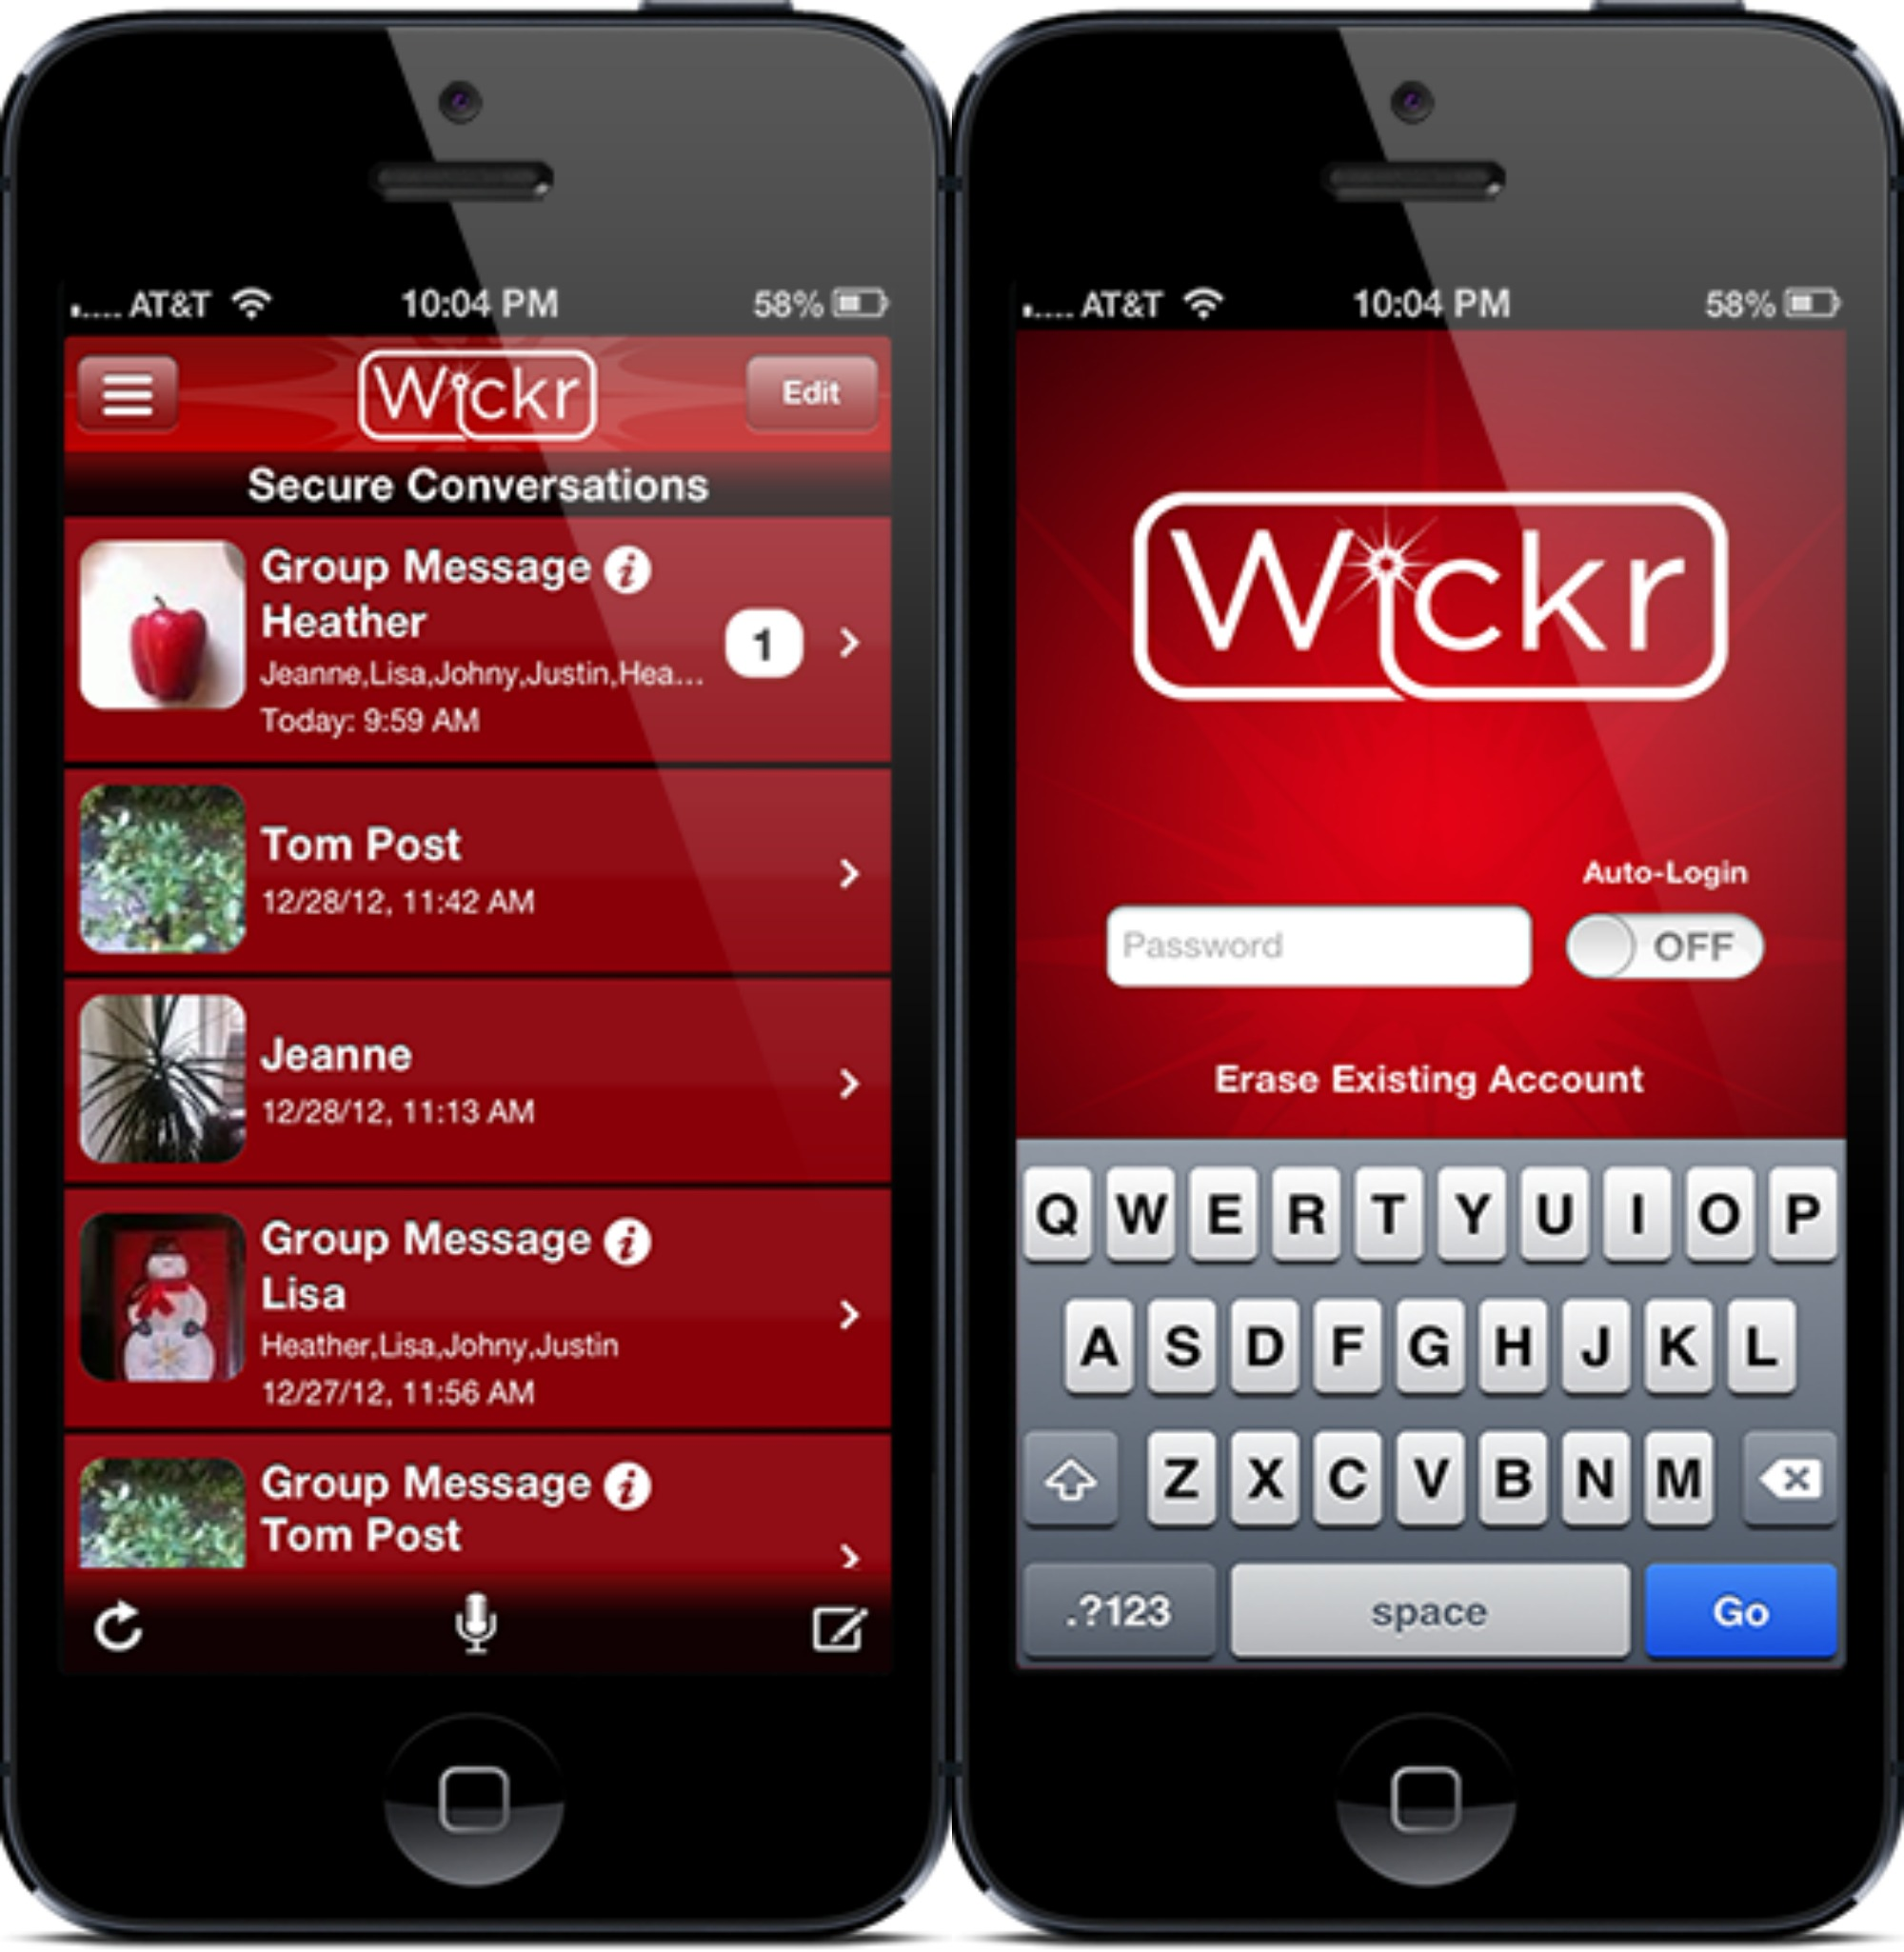 Inrero Cool Apps – Wickr: Top-Secret Messaging